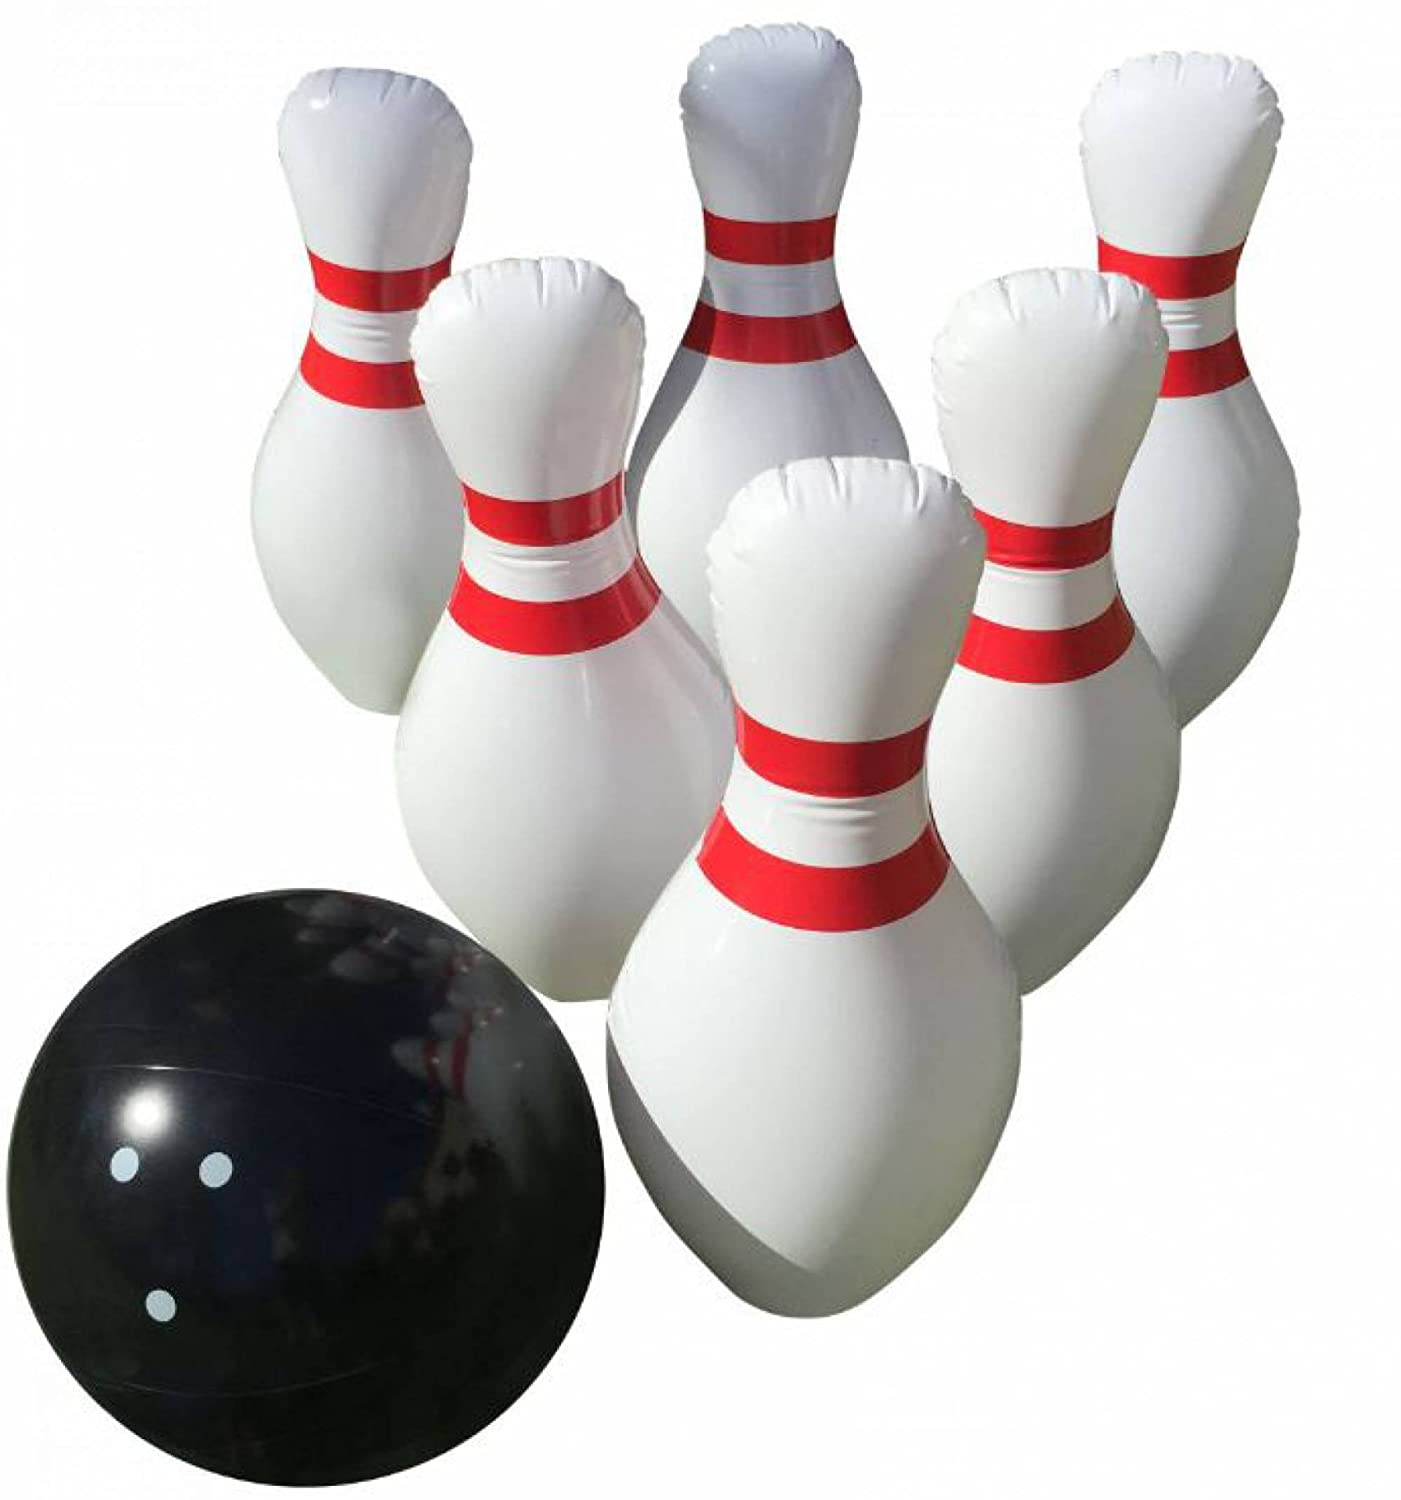 Bowling pin balloons - Amazon Com Giant Inflatable Bowling Game Set Indoor Outdoor Jumbo Size 24 Pins And 18 Ball A Great Party Game Oversized Fun For Kids Of All